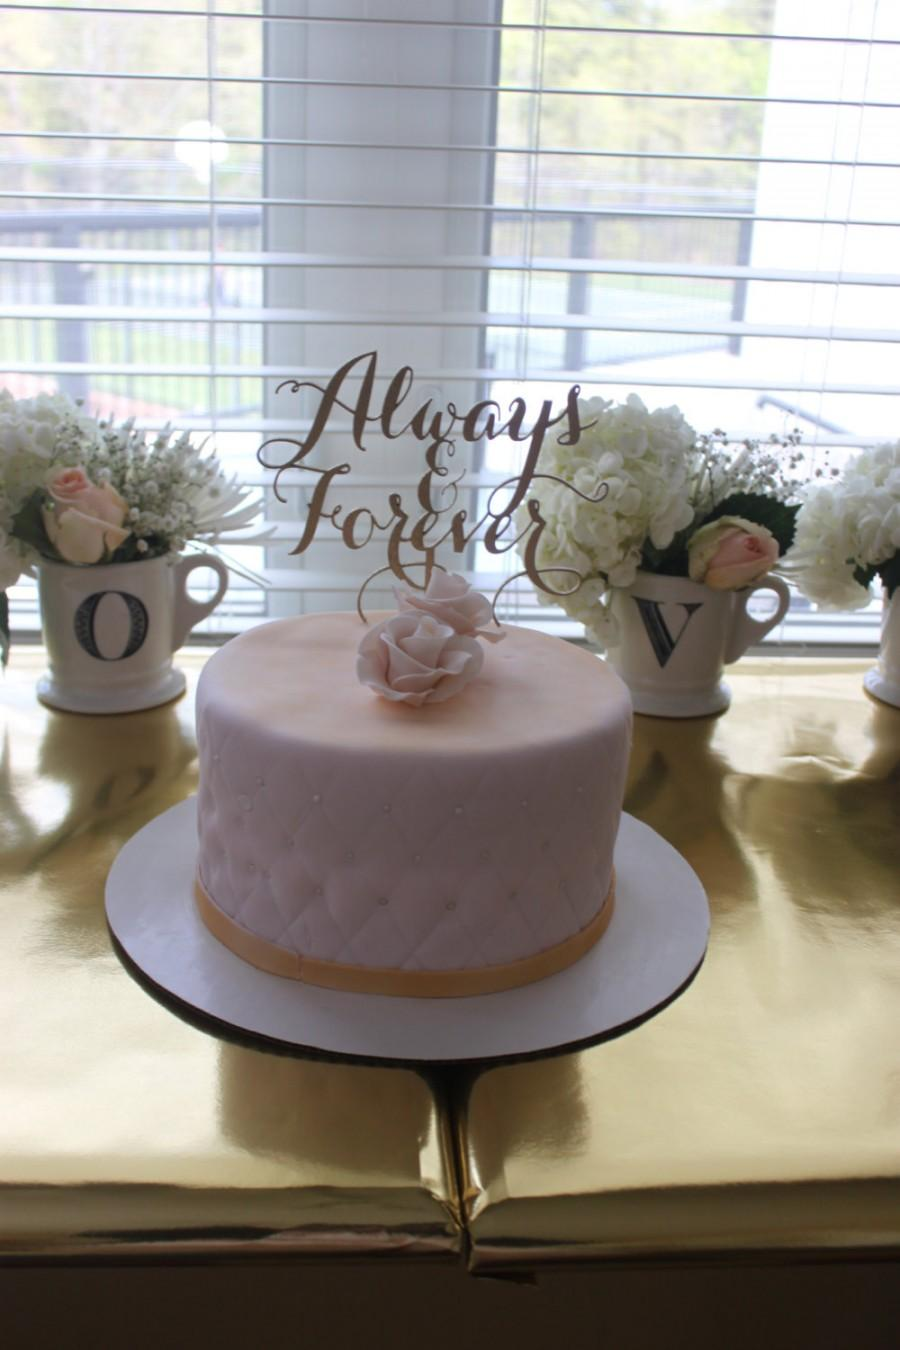 Mariage - Always and Forever! Cake Topper for Engagement Parties, Bridal Showers, and Weddings